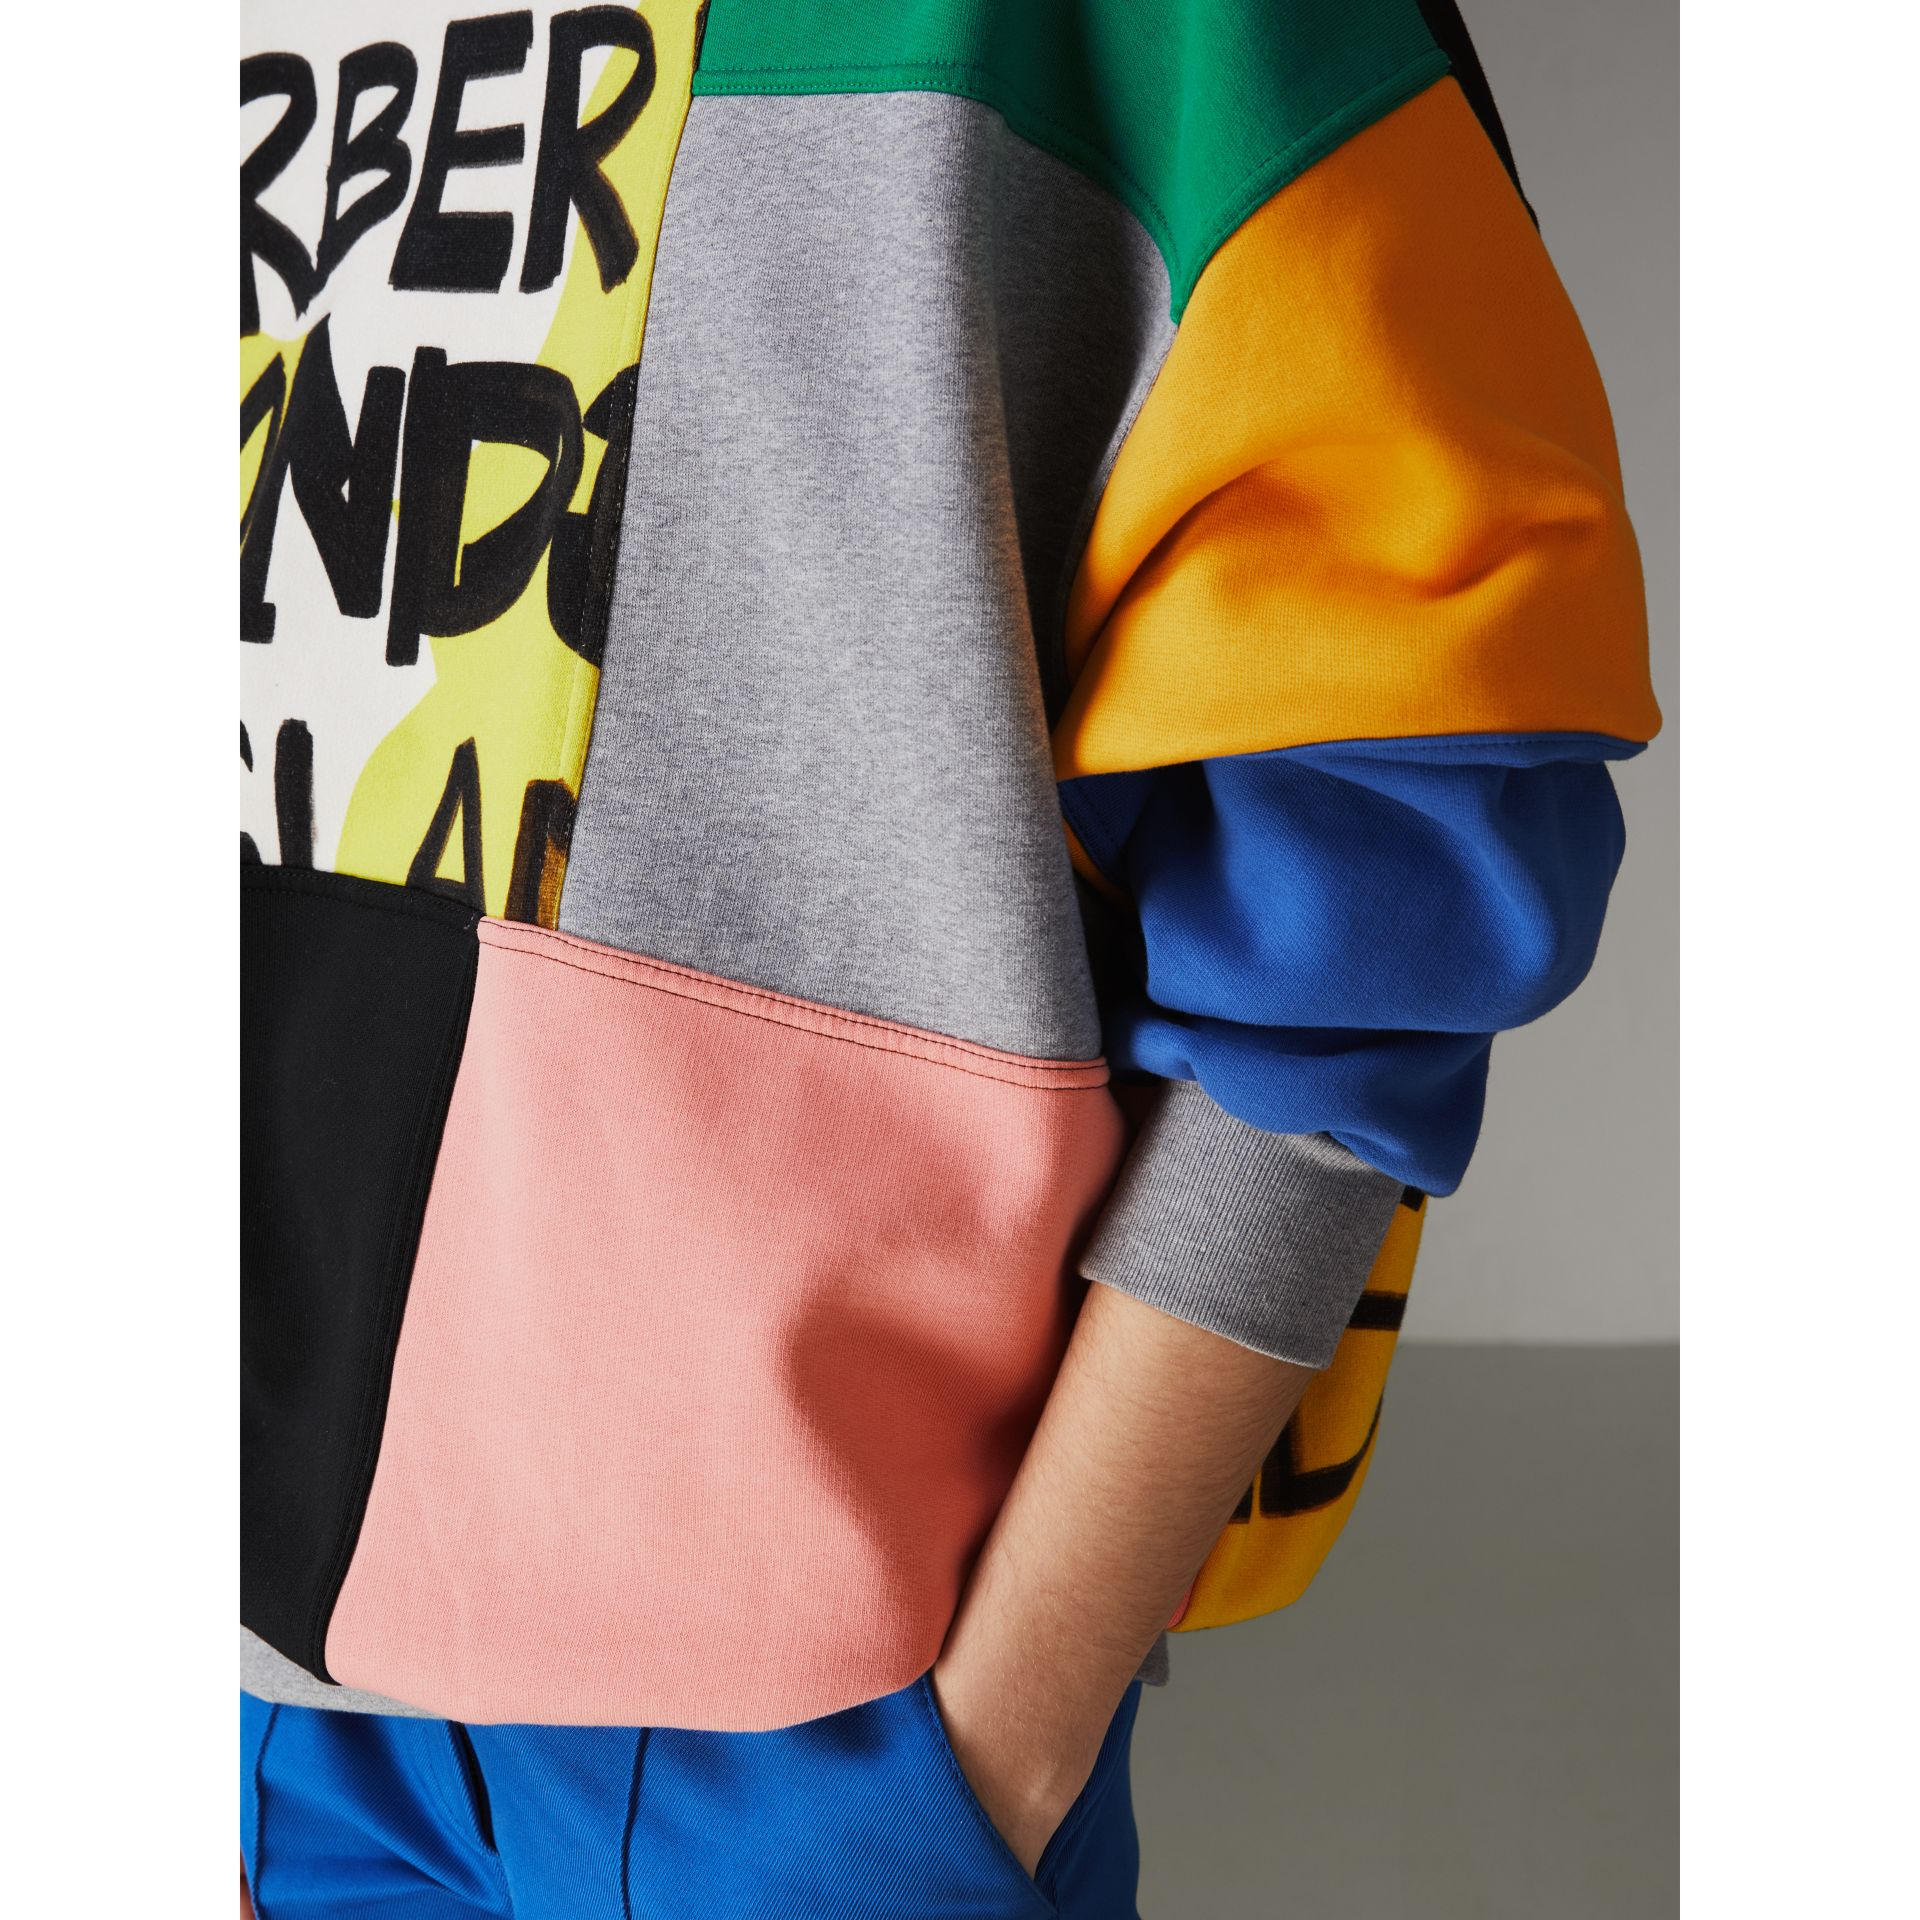 Graffiti Print Panel Cotton Blend Sweatshirt in Multicolour - Women | Burberry - gallery image 1